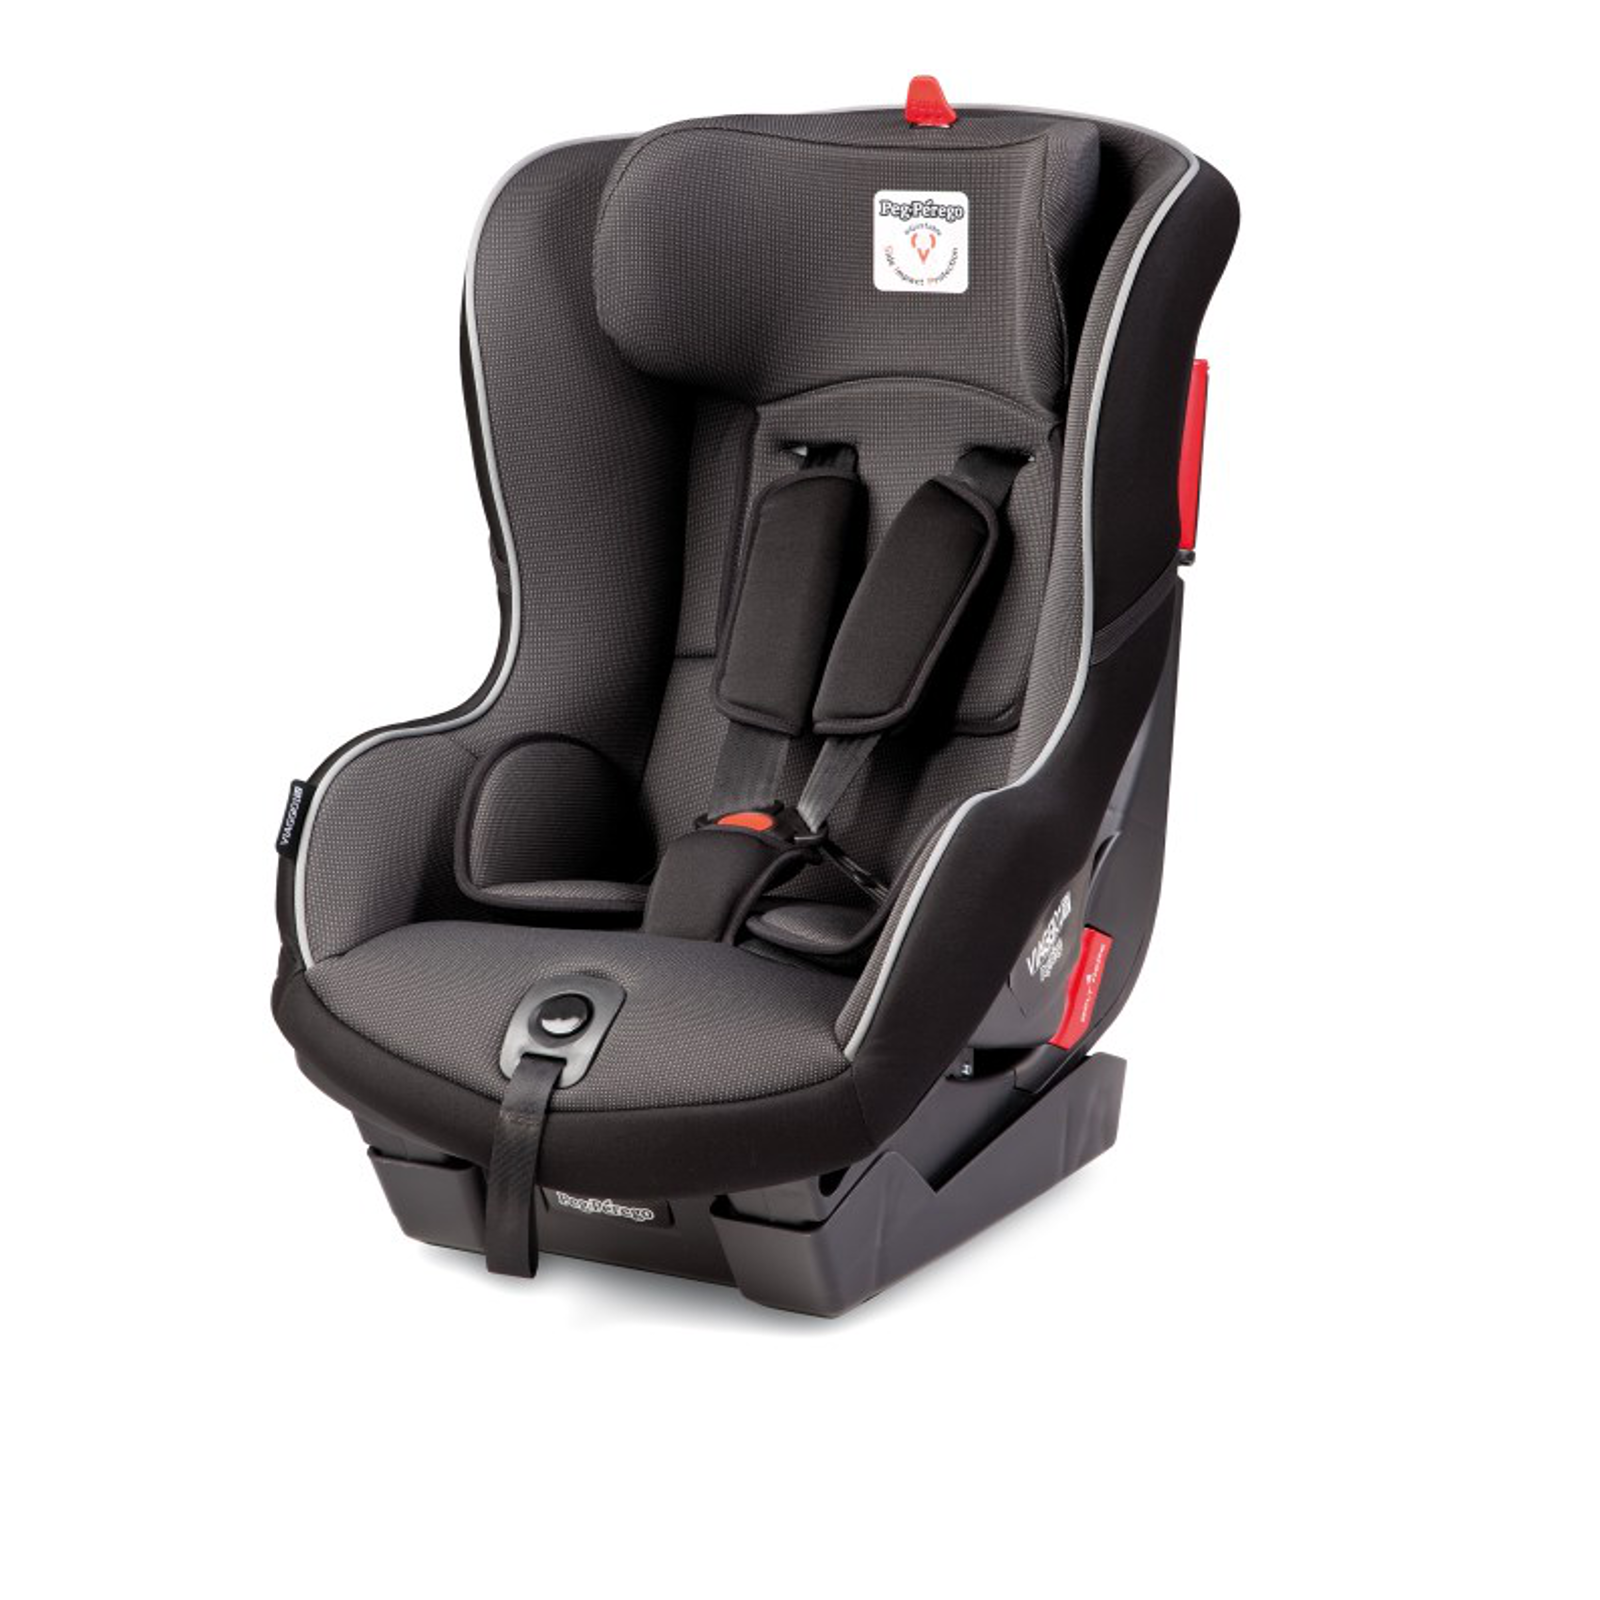 Автокресло Peg-Perego Viaggio DUO-FIX K Black (Peg Perego)